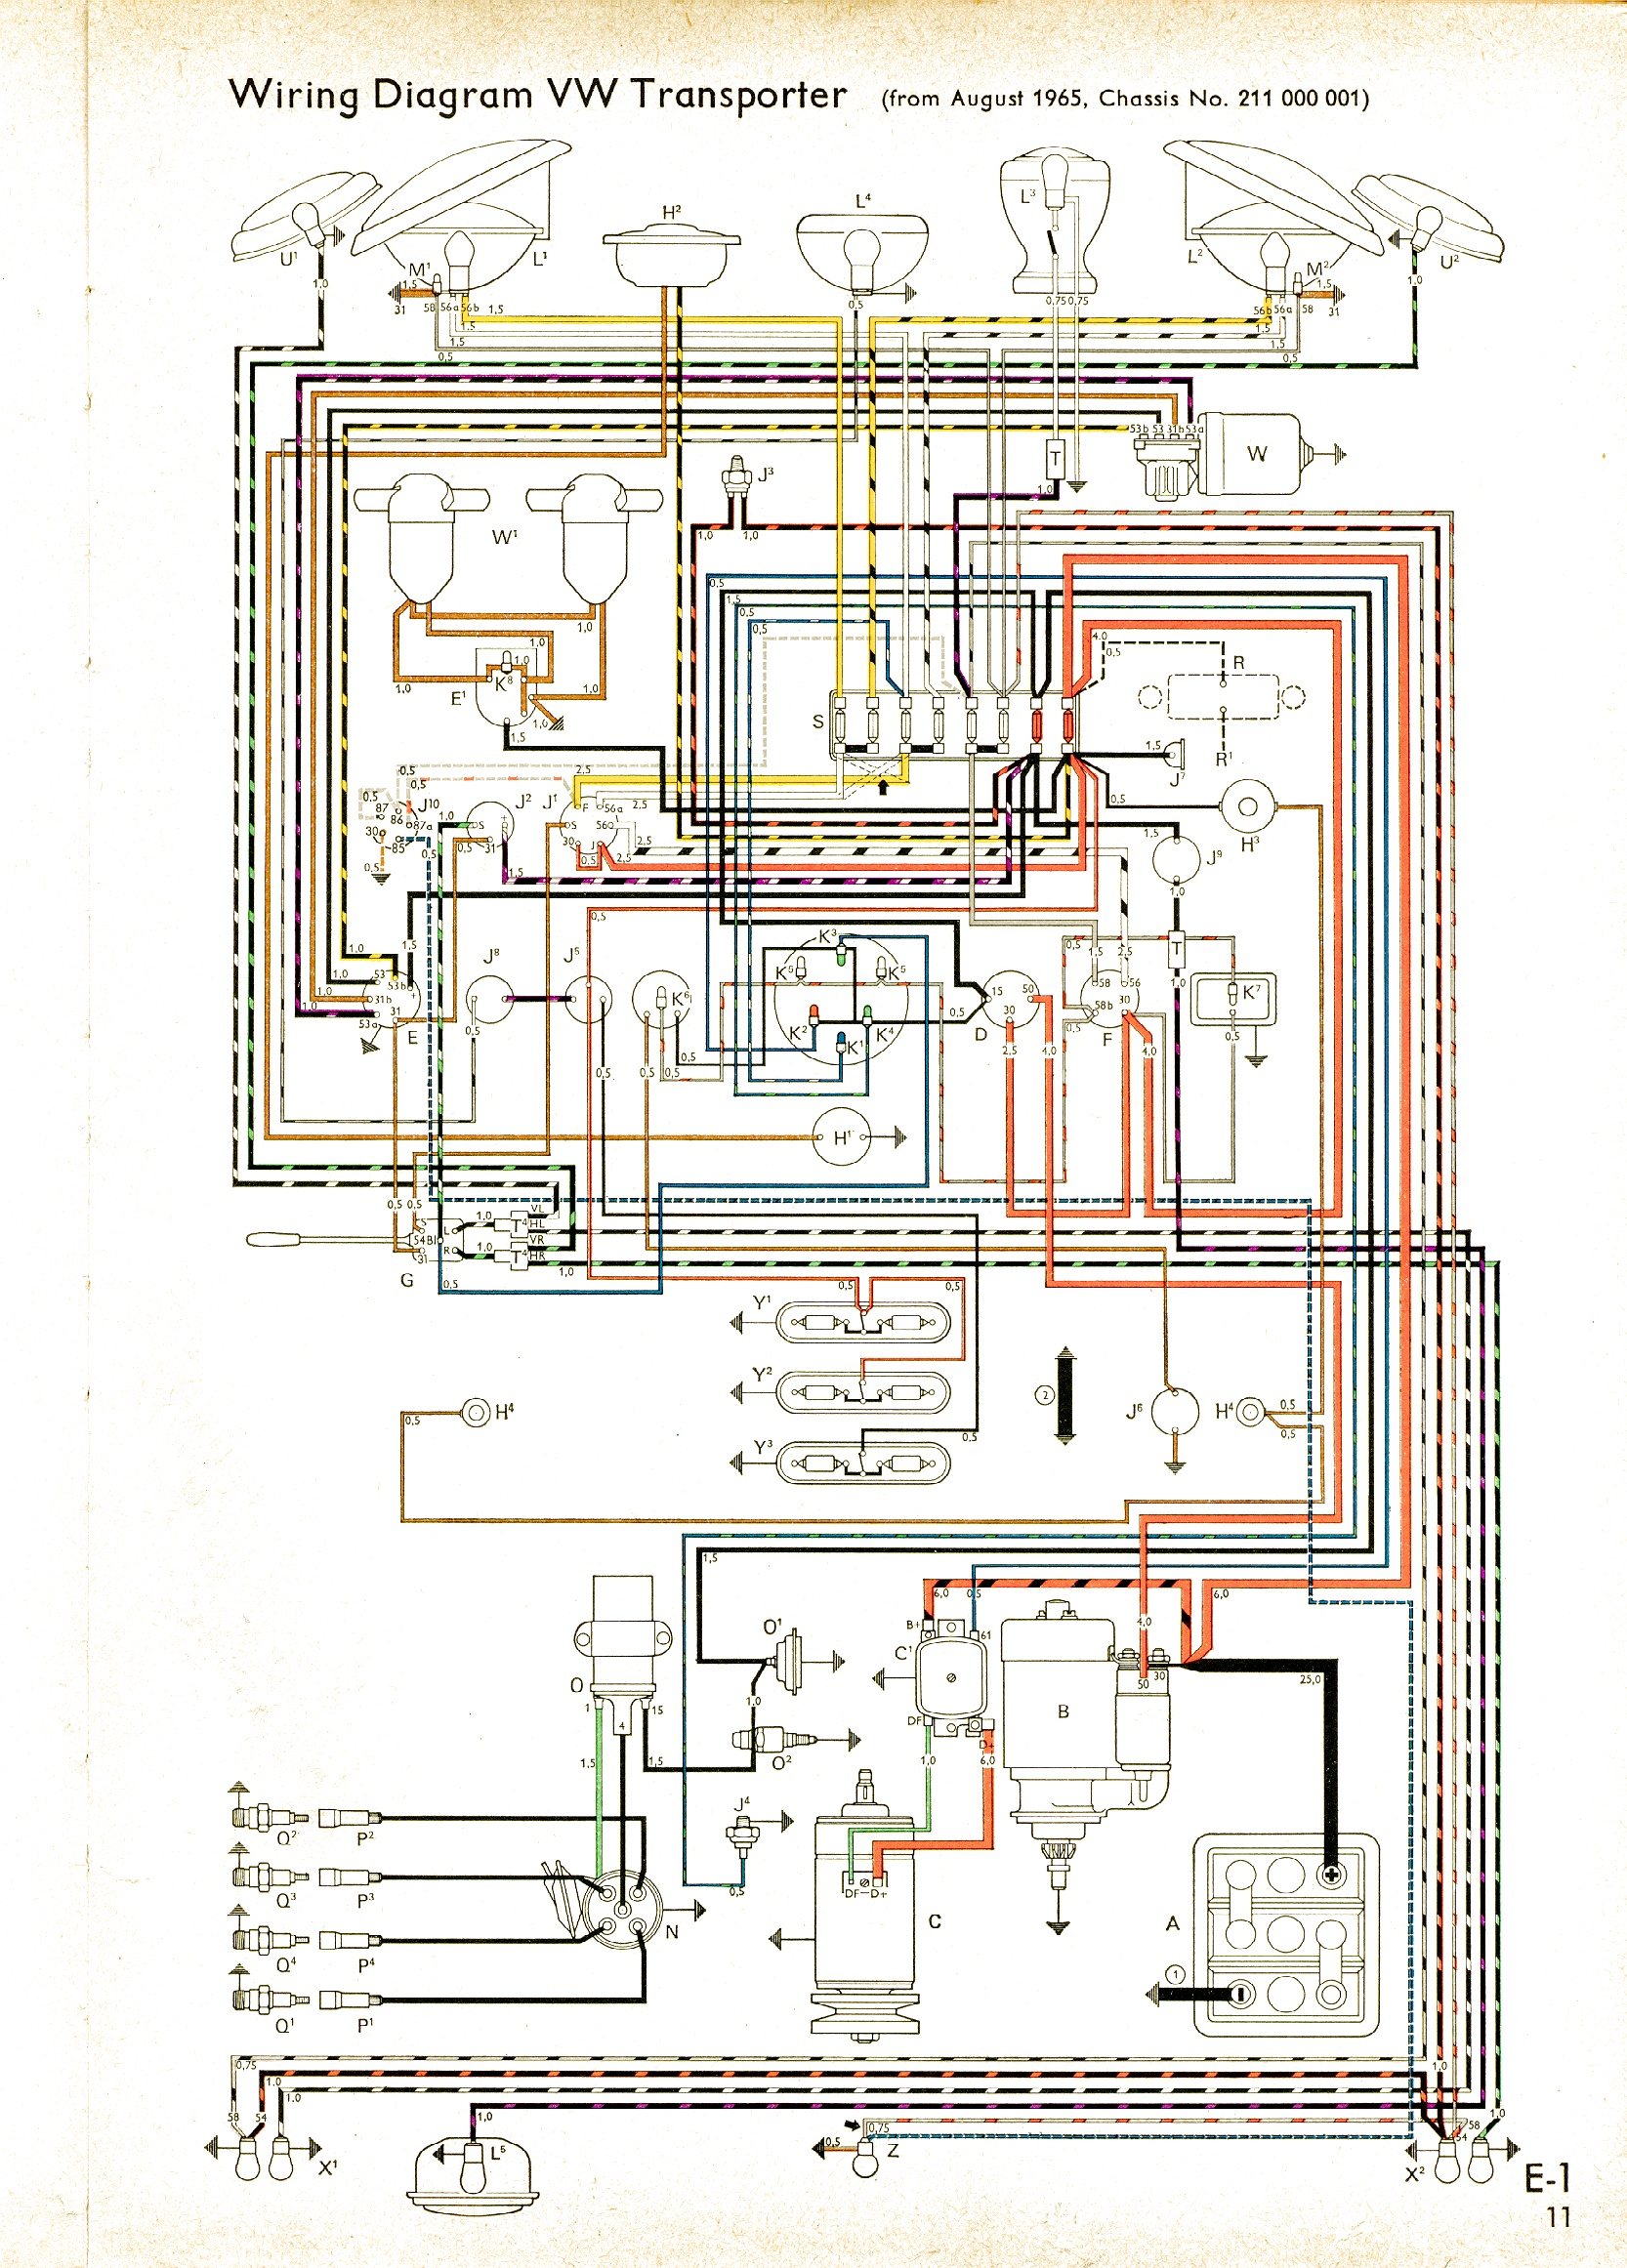 bus 65 vw wiring diagrams 1973 vw beetle wiring diagram at n-0.co